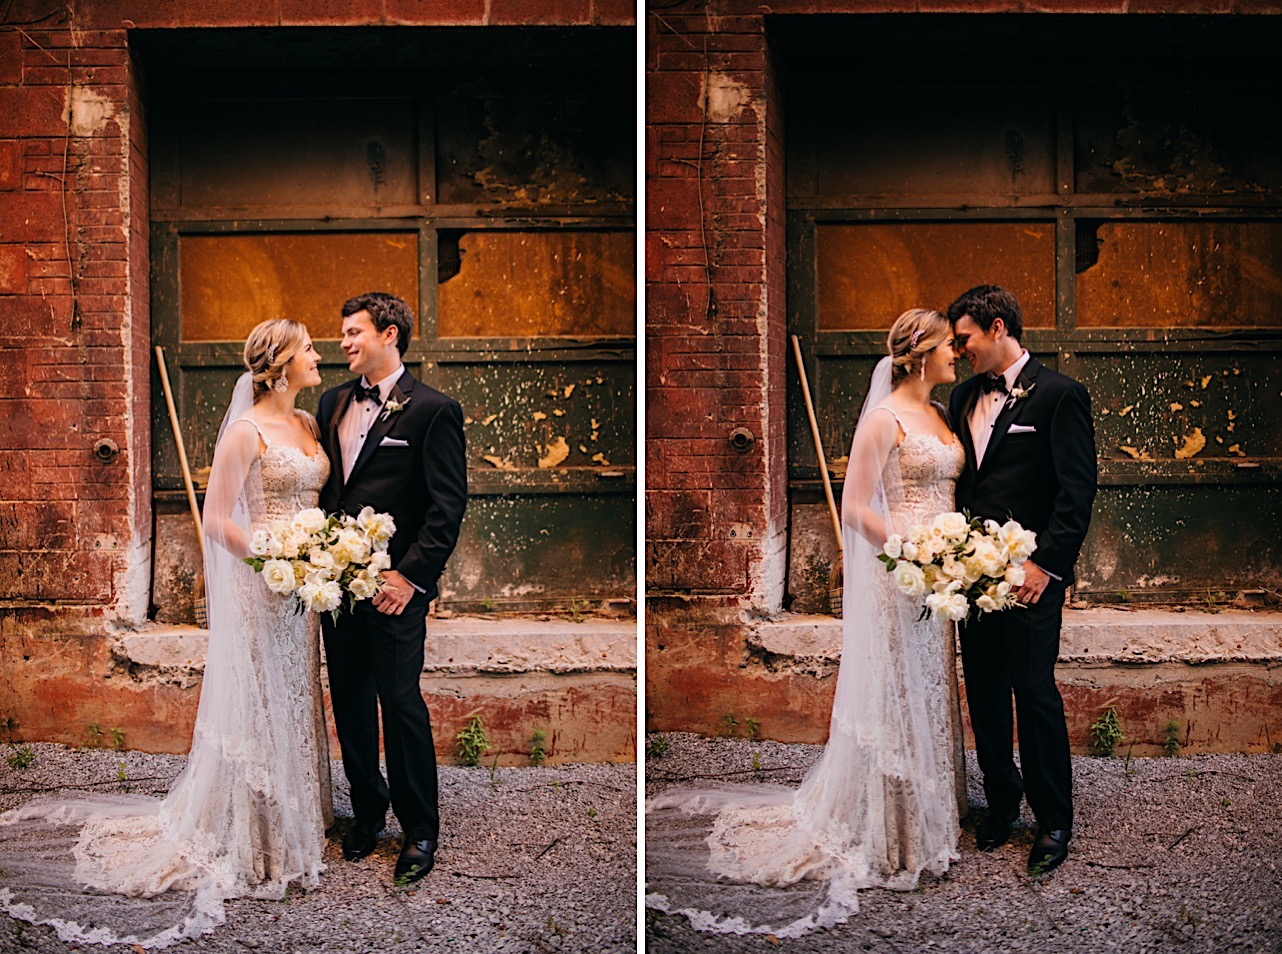 bride and groom smile at each other in a gravel alley in front of rough brick wall and distressed paneled garage door